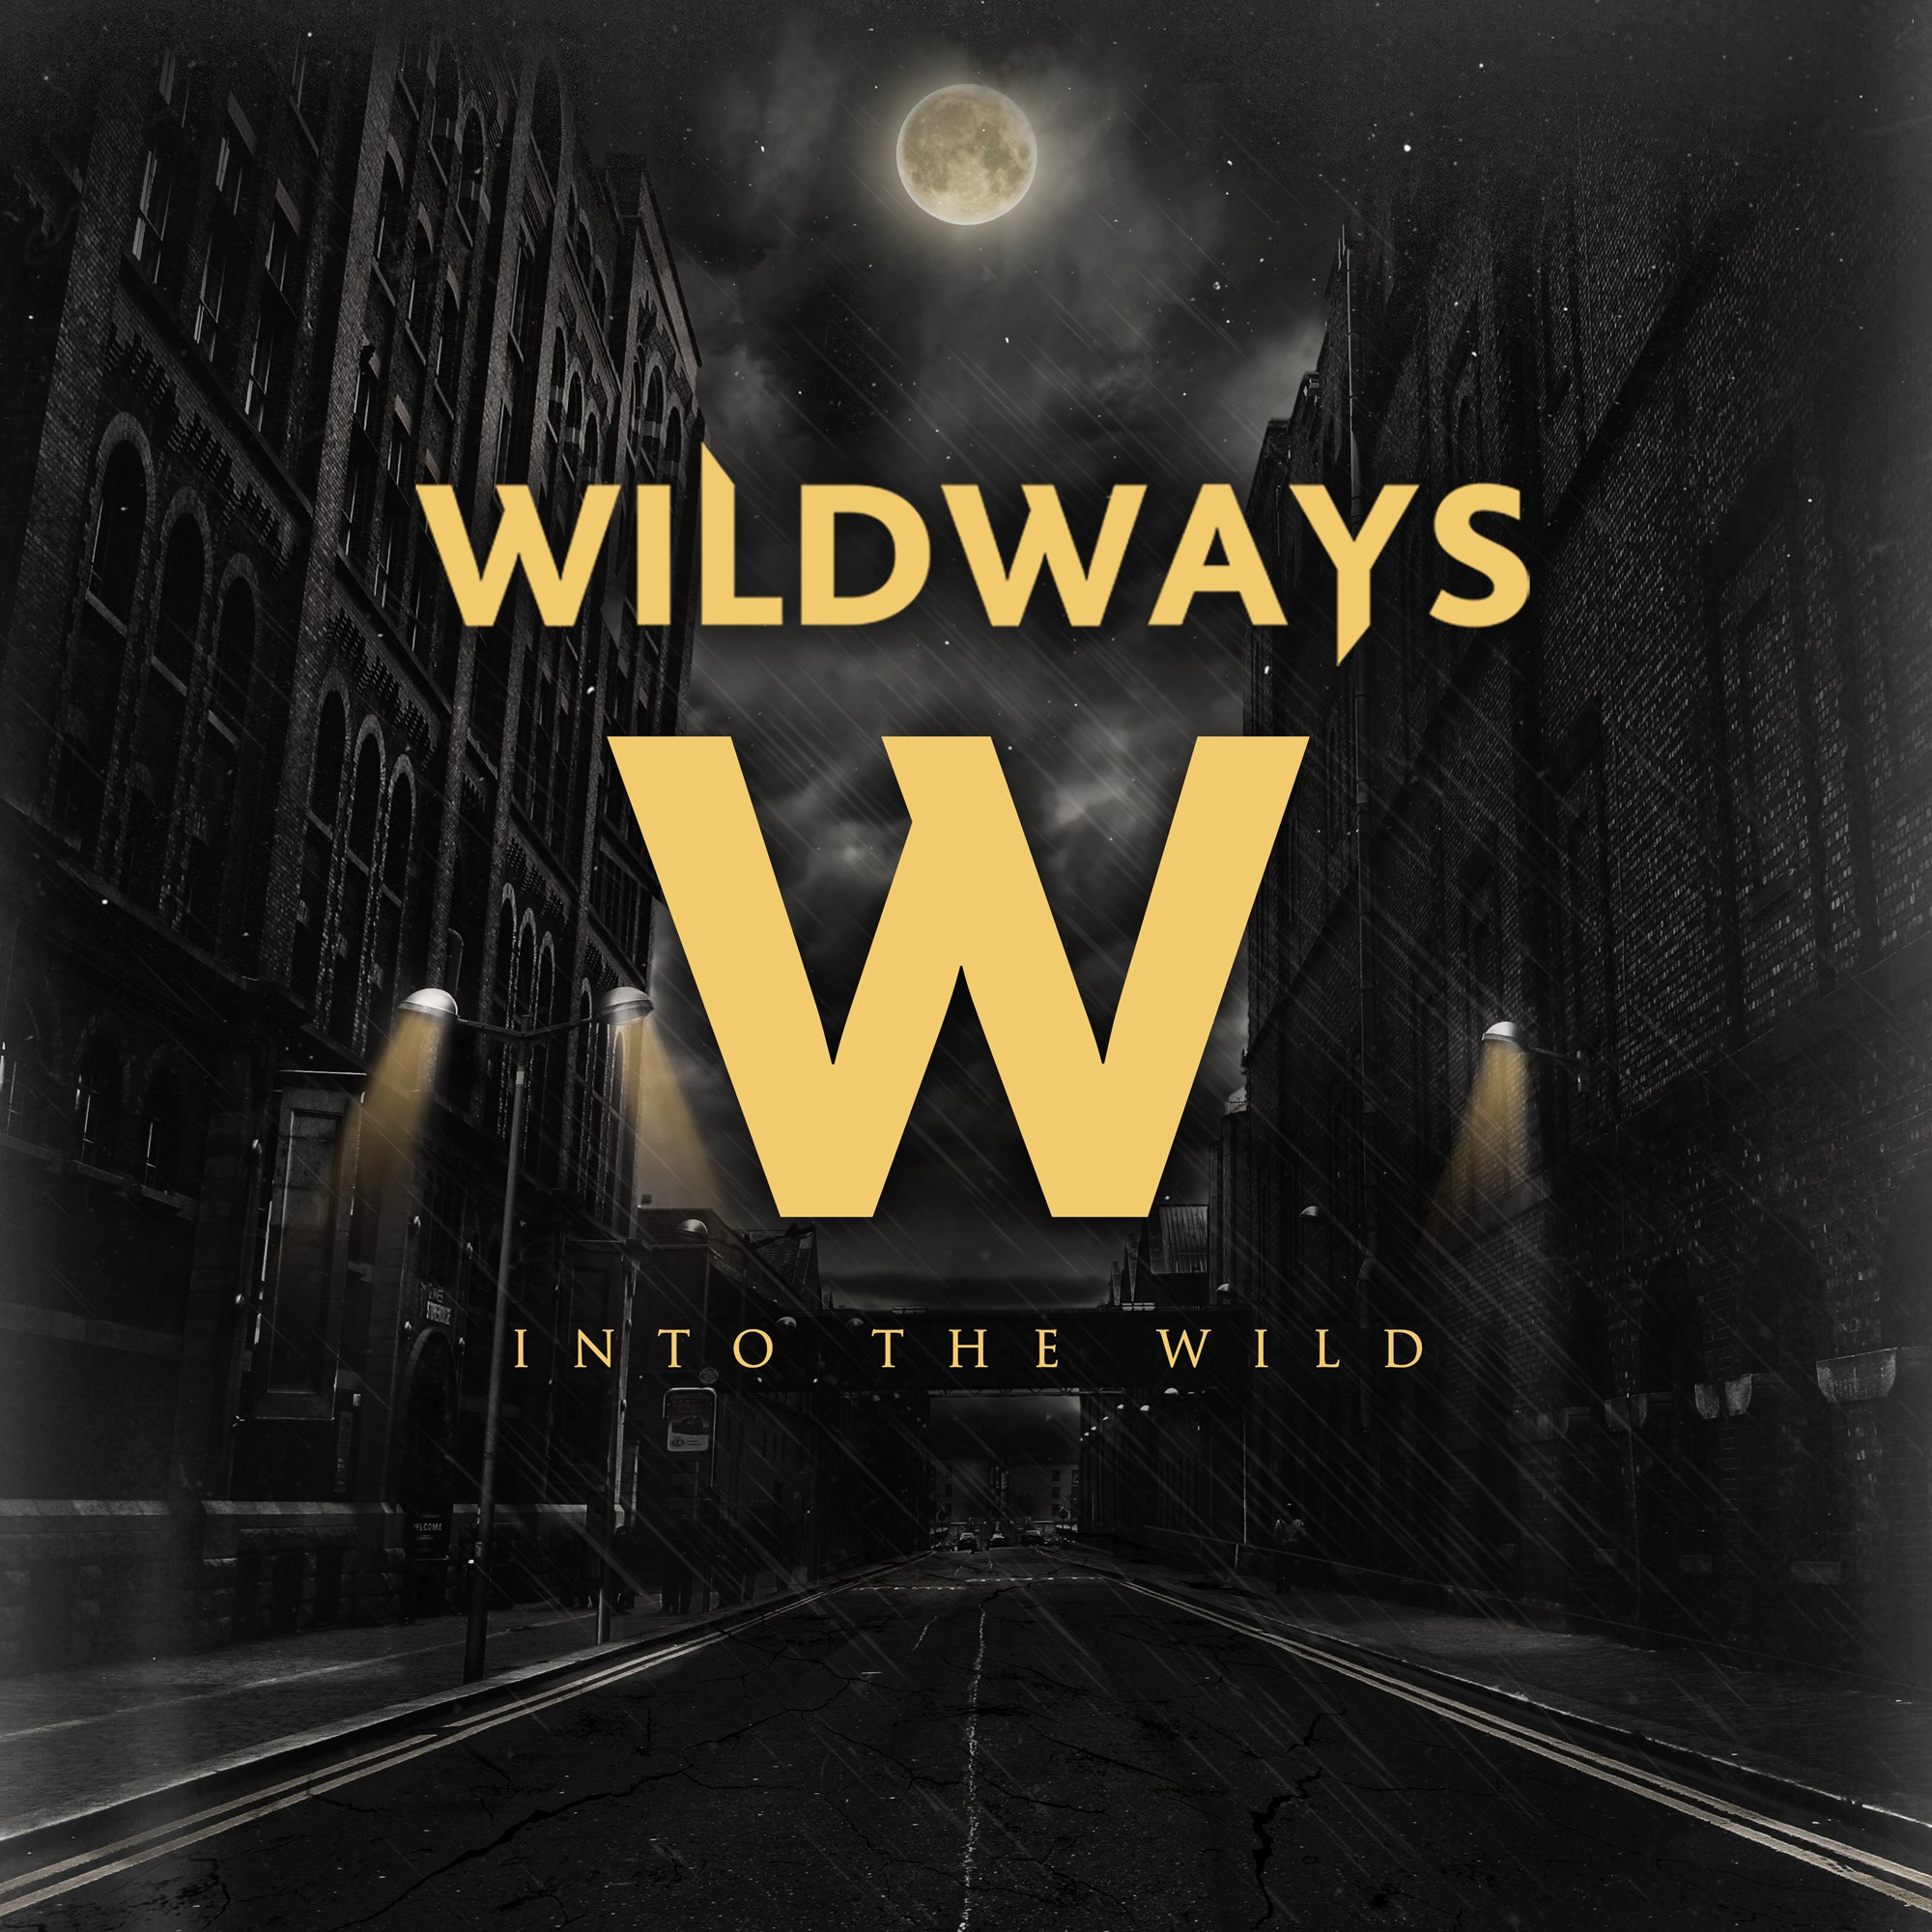 Interview with Toli from Wildways